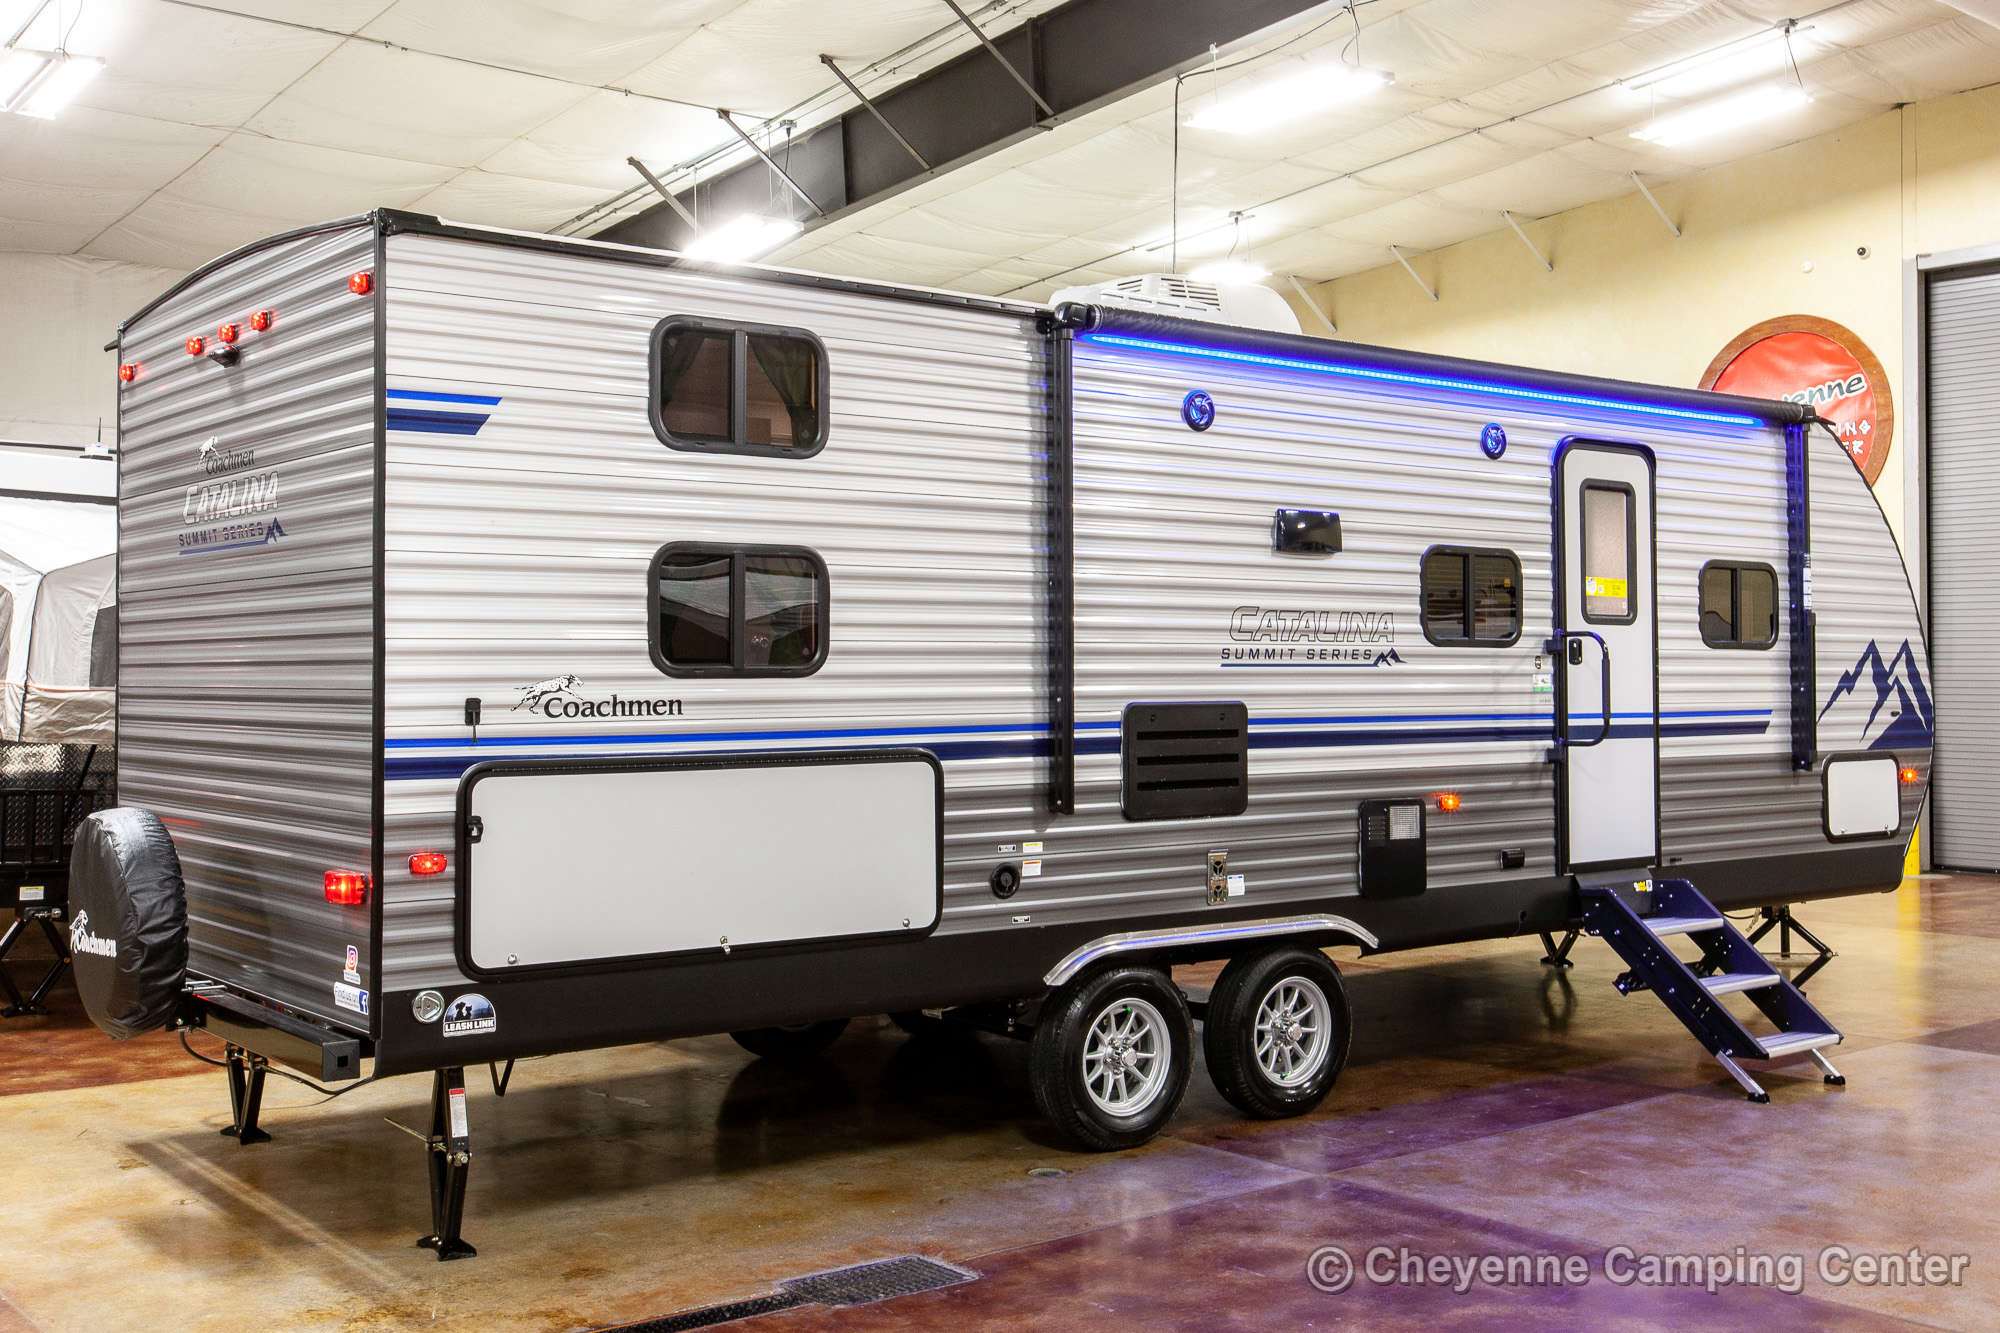 2021 Coachmen Catalina Summit Series 261BHS Bunkhouse Travel Trailer Exterior Image